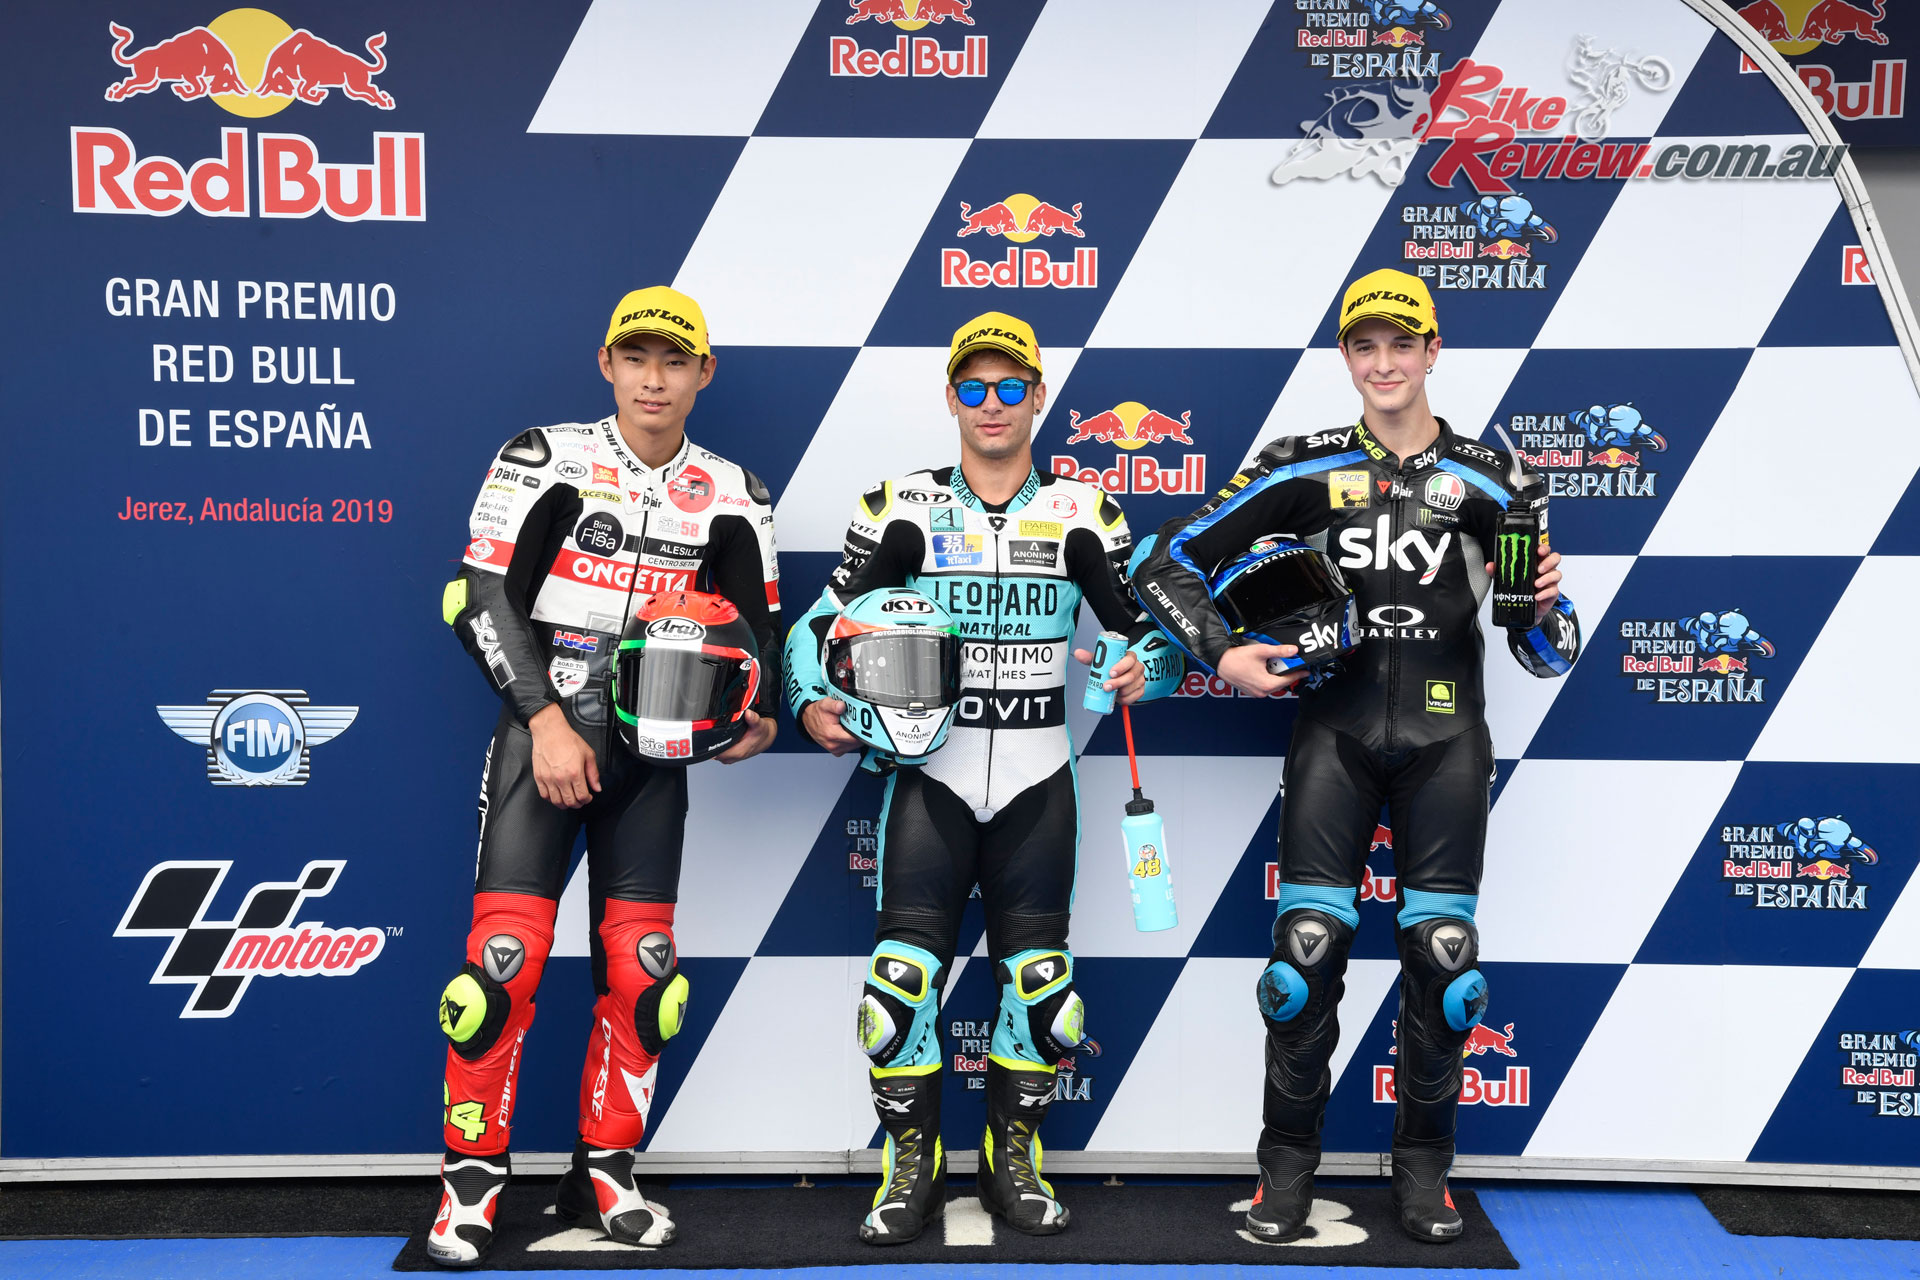 Moto3 Qualifying Top 3